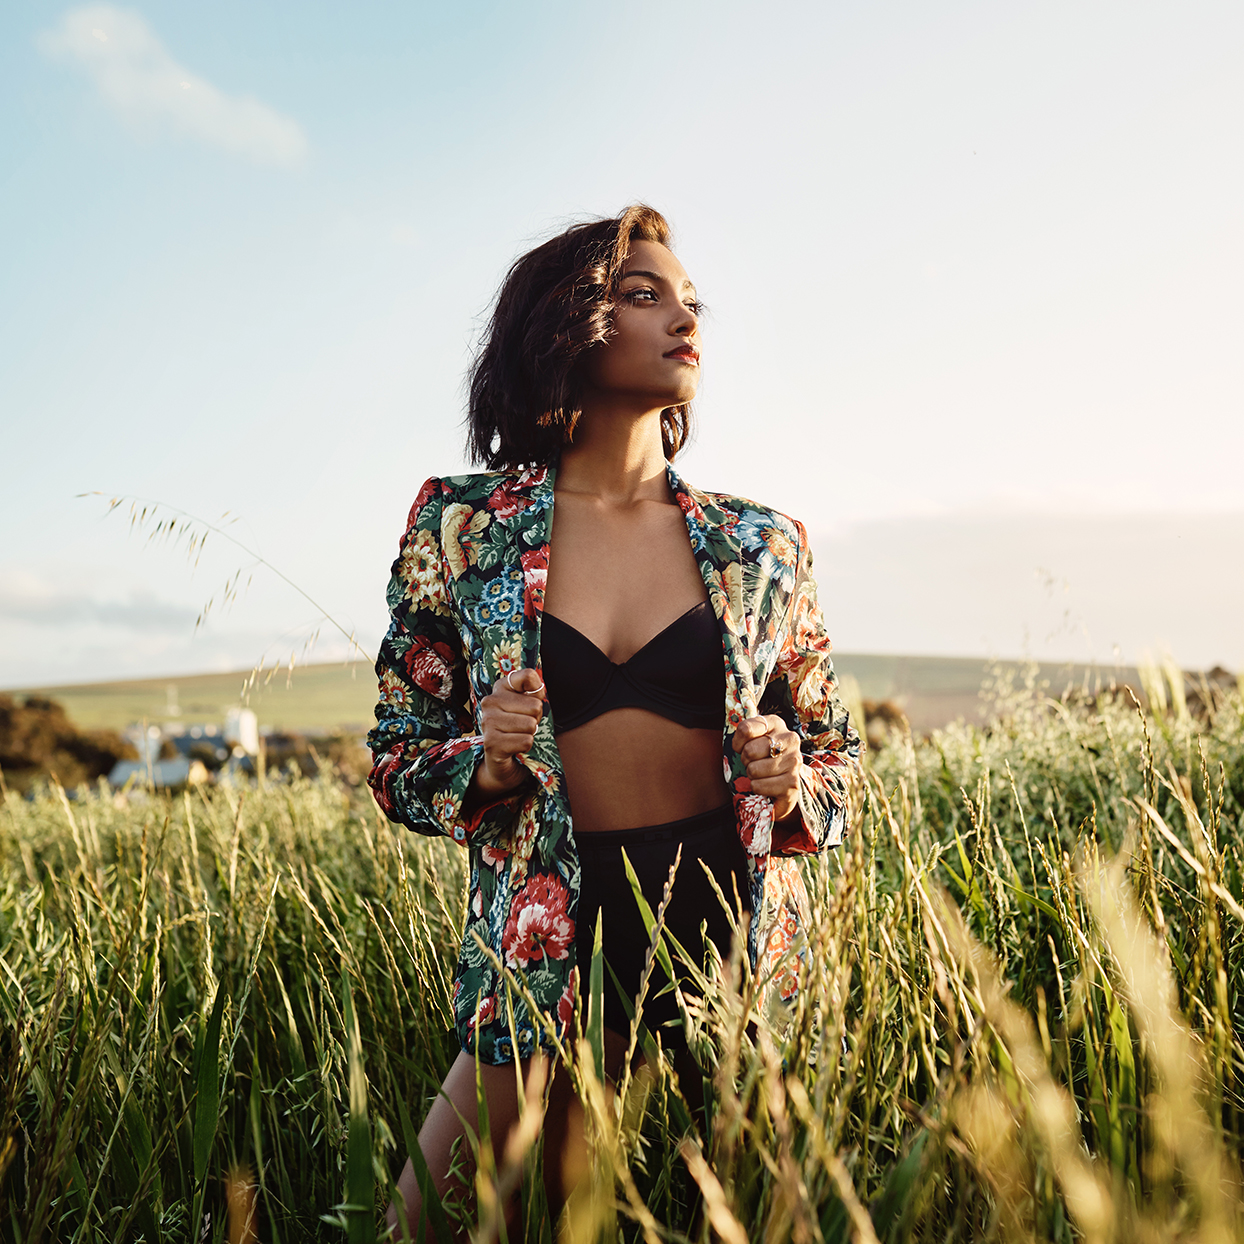 A woman wearing a comfy bra in a field